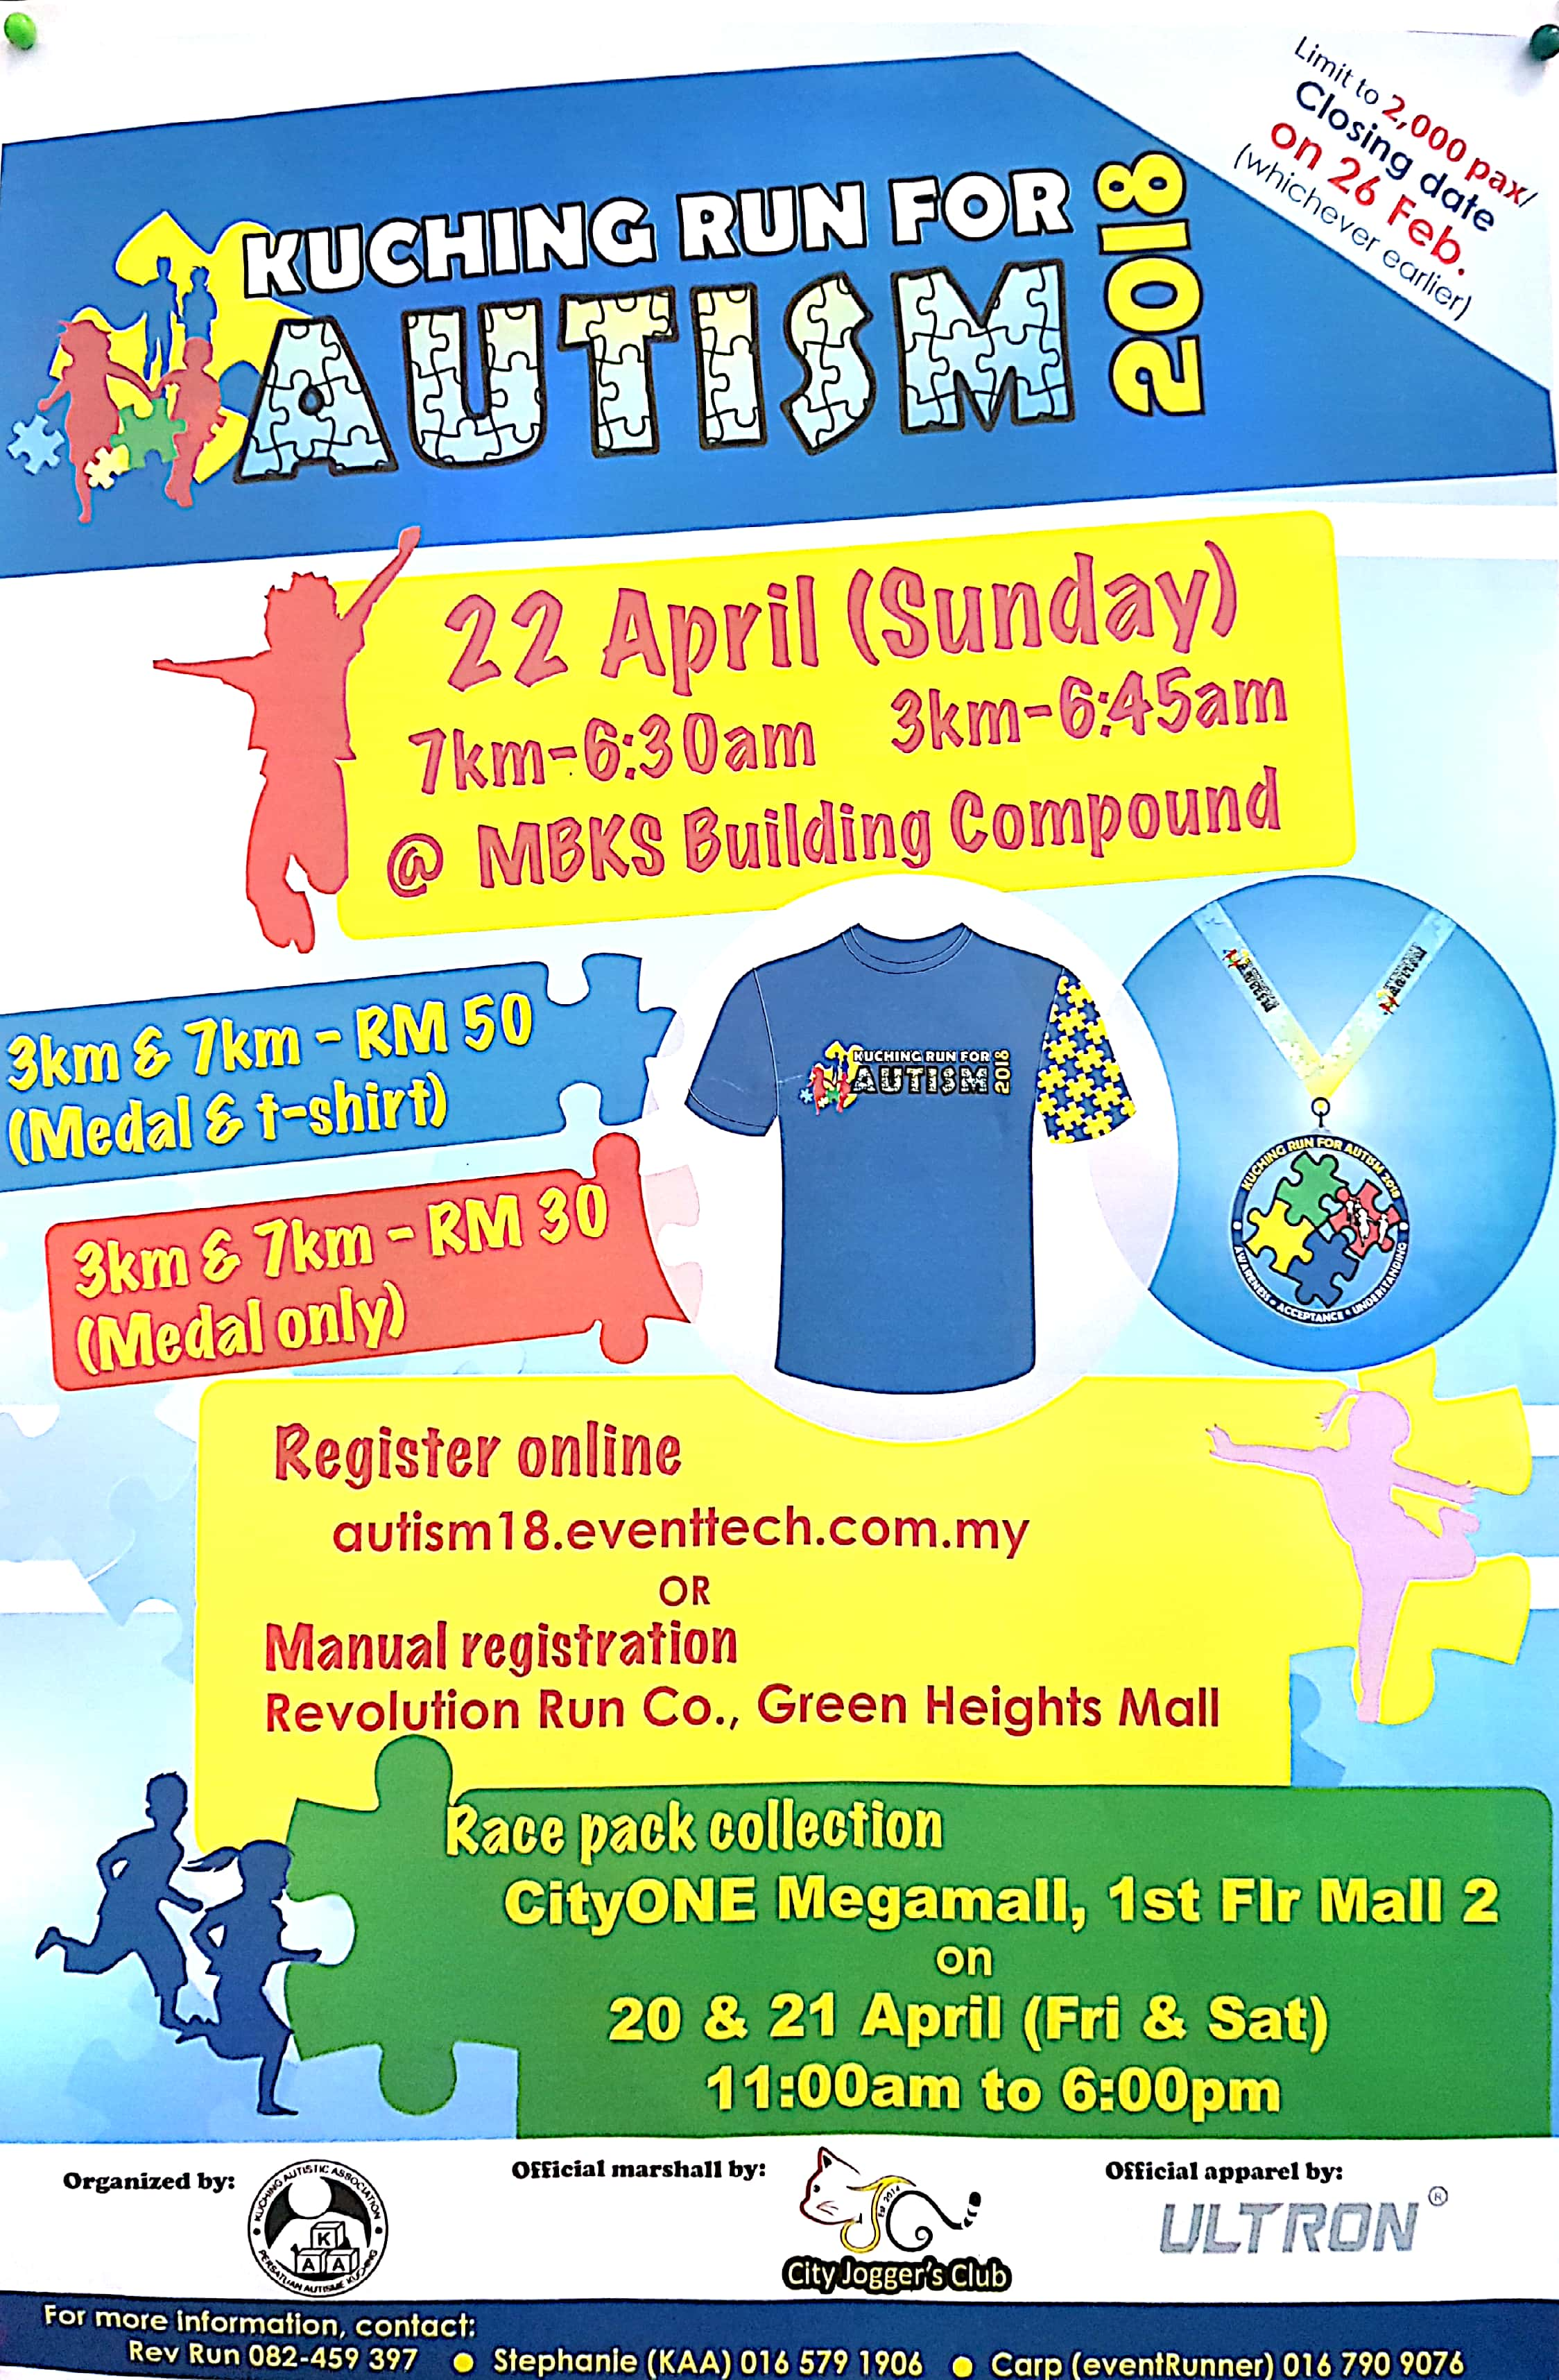 KUCHING RUN FOR AUTISM 2018